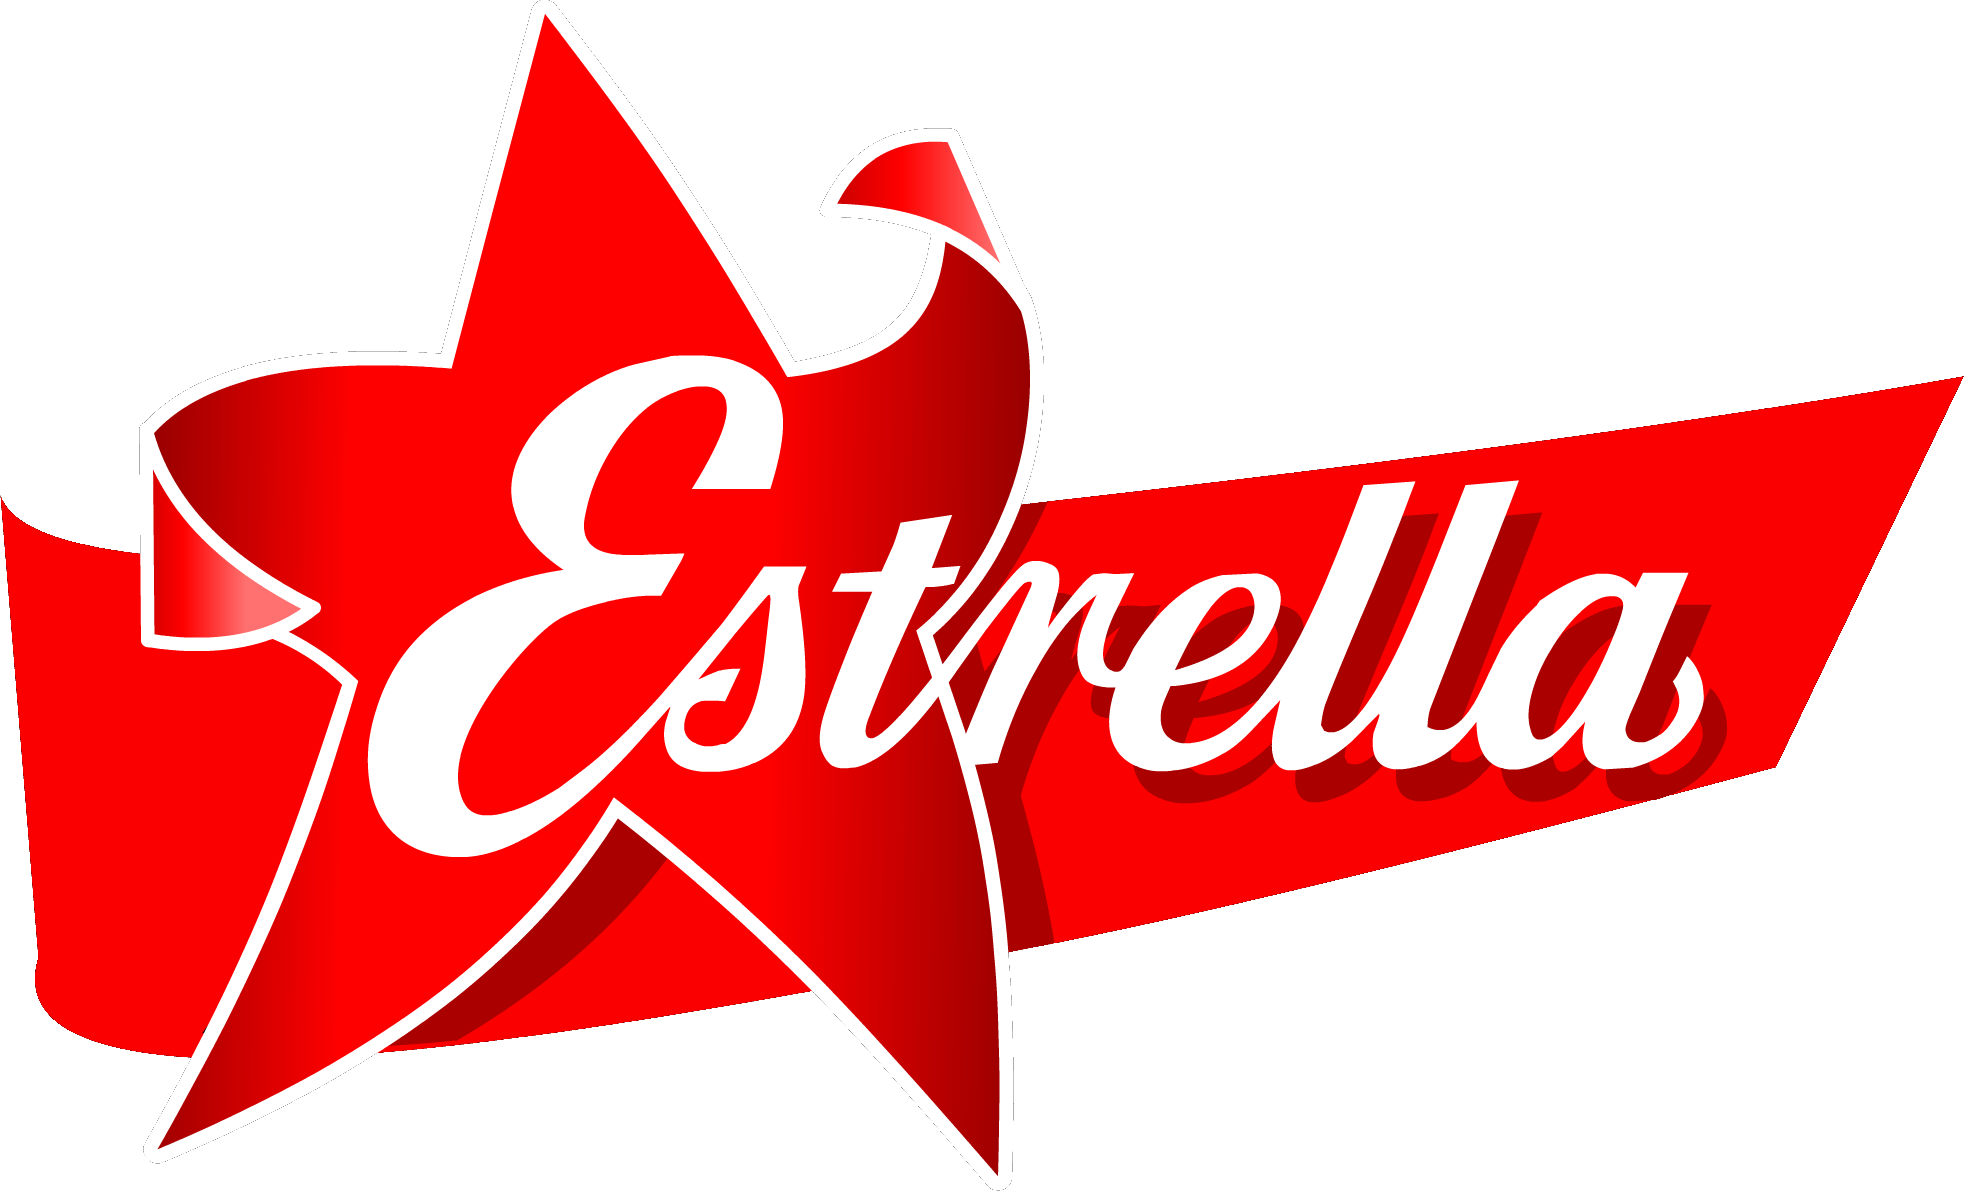 Ensalada Verde Con Fresas Y Nueces Caramelizadas 125673 together with Mac Cheese Hot Dog Skillet 92090 further Estrella together with 14286011 furthermore Chicagos Top Fortune 500  panies 4136632. on kraft foods